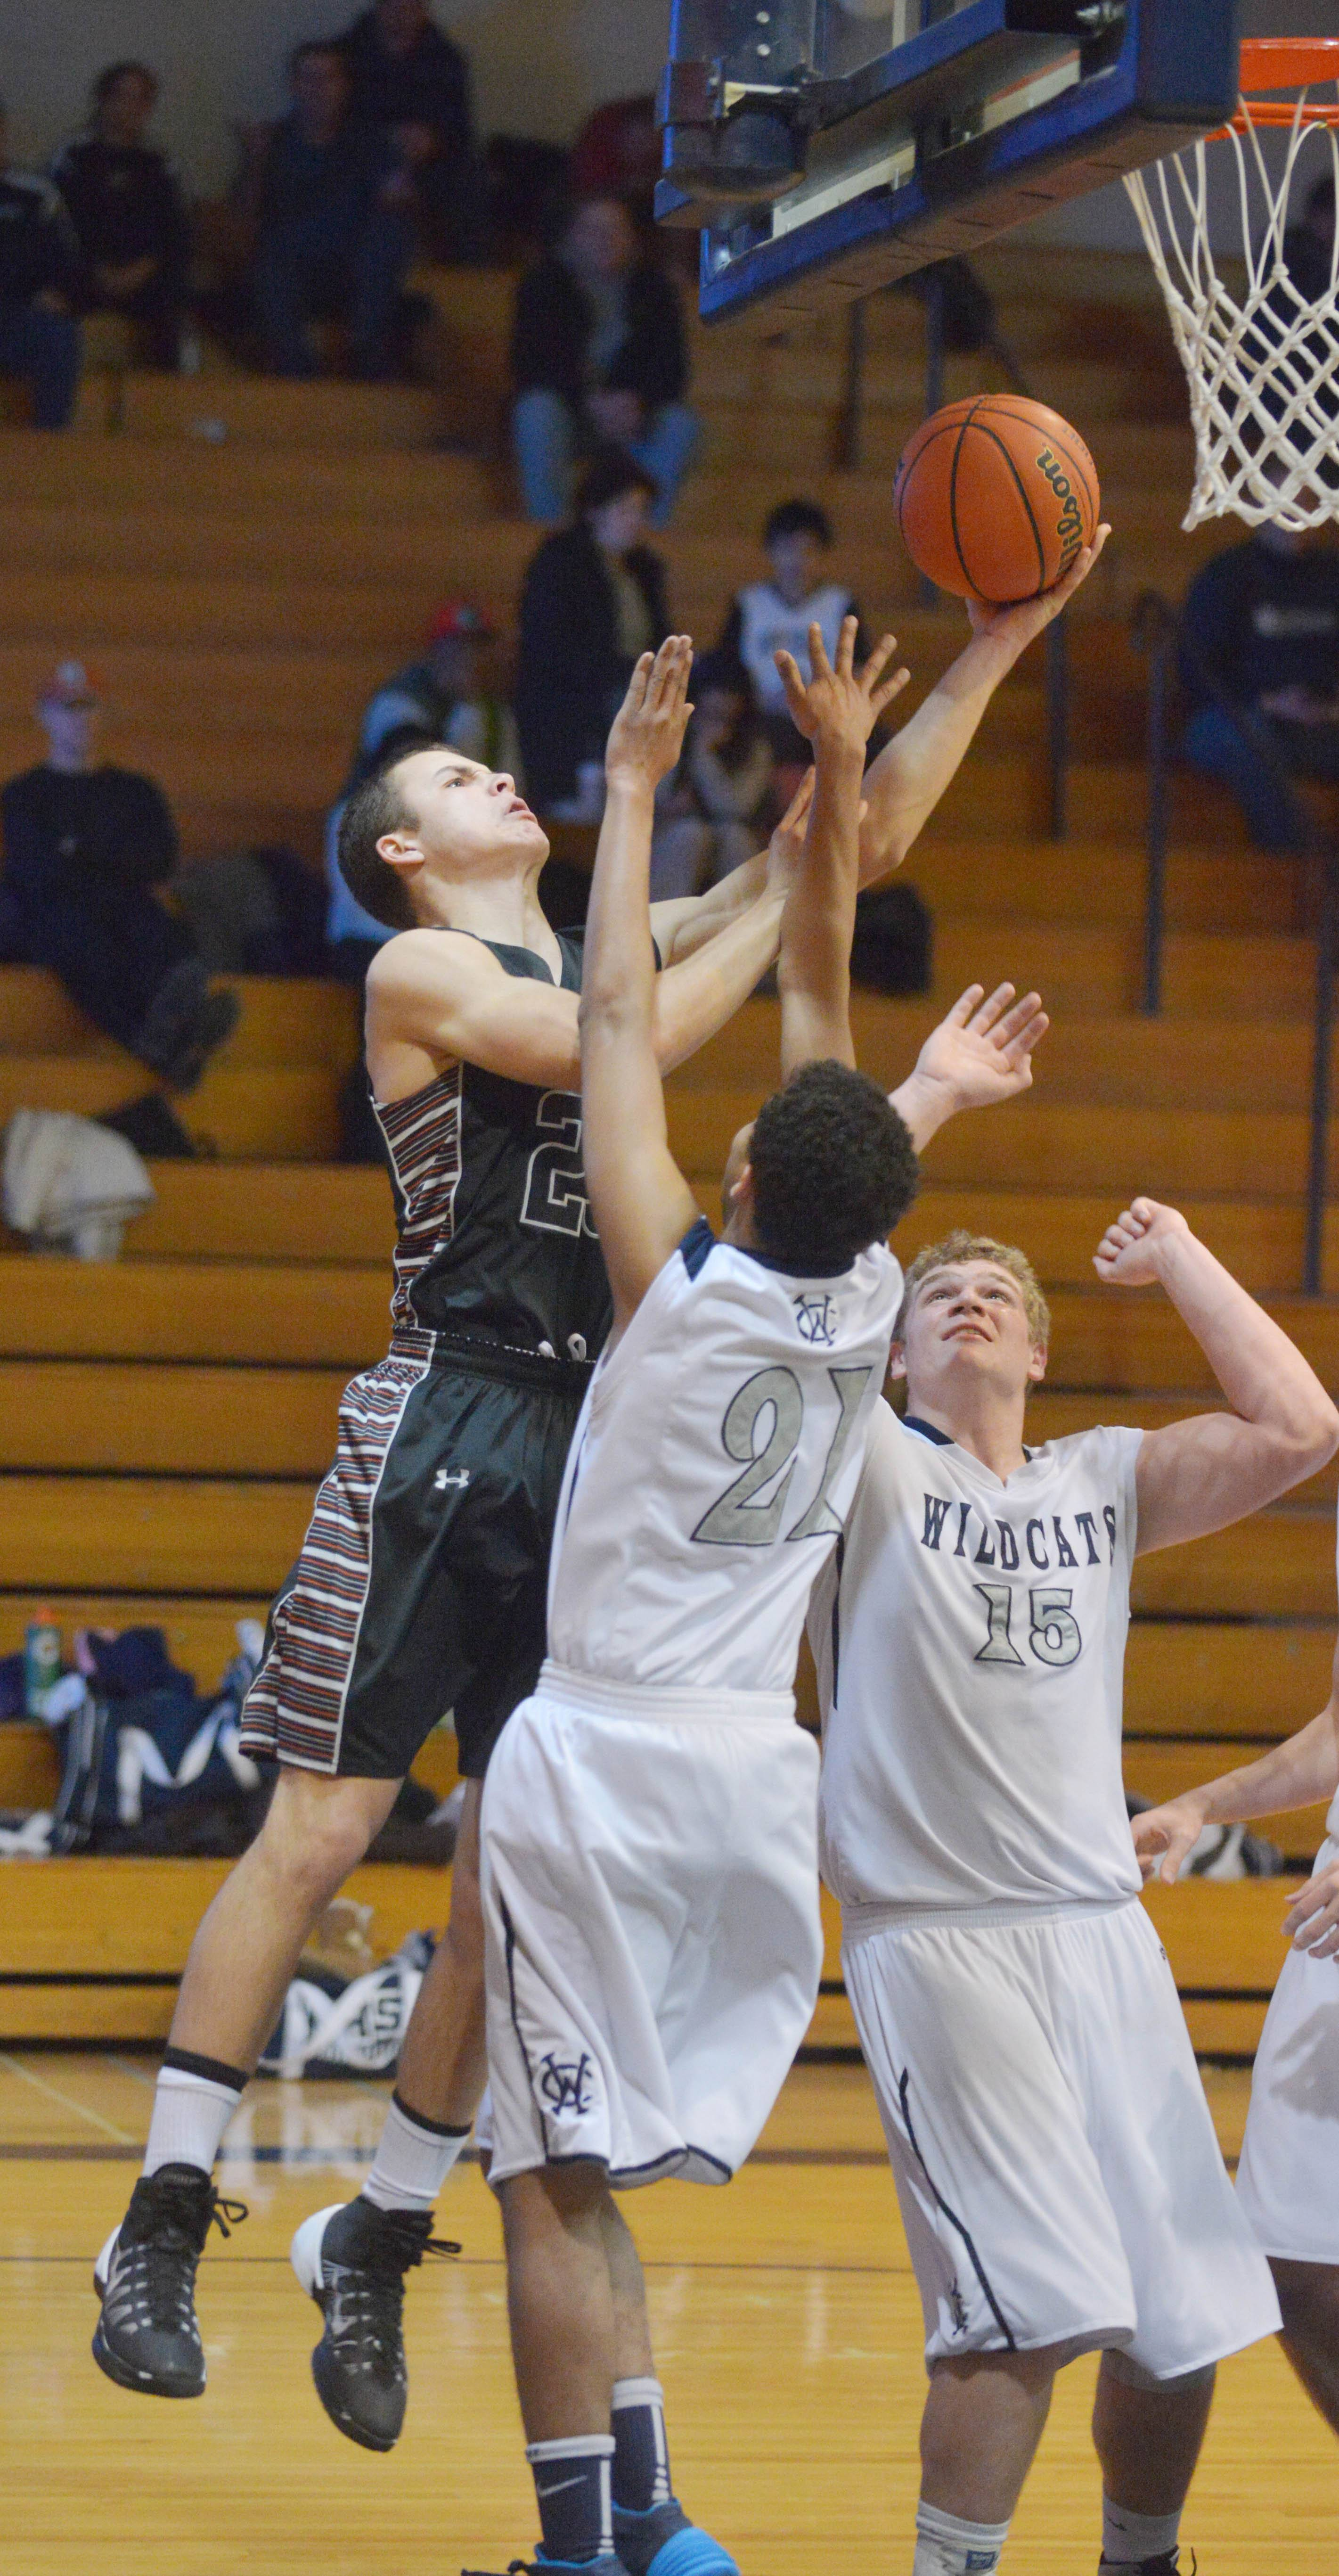 of Kaneland Tyler Carlson takes a shot over (21) Michael Bibbs and (15) Ethan Doell of West Chicago during the Kaneland at West Chicago boys basketball game Tuesday.